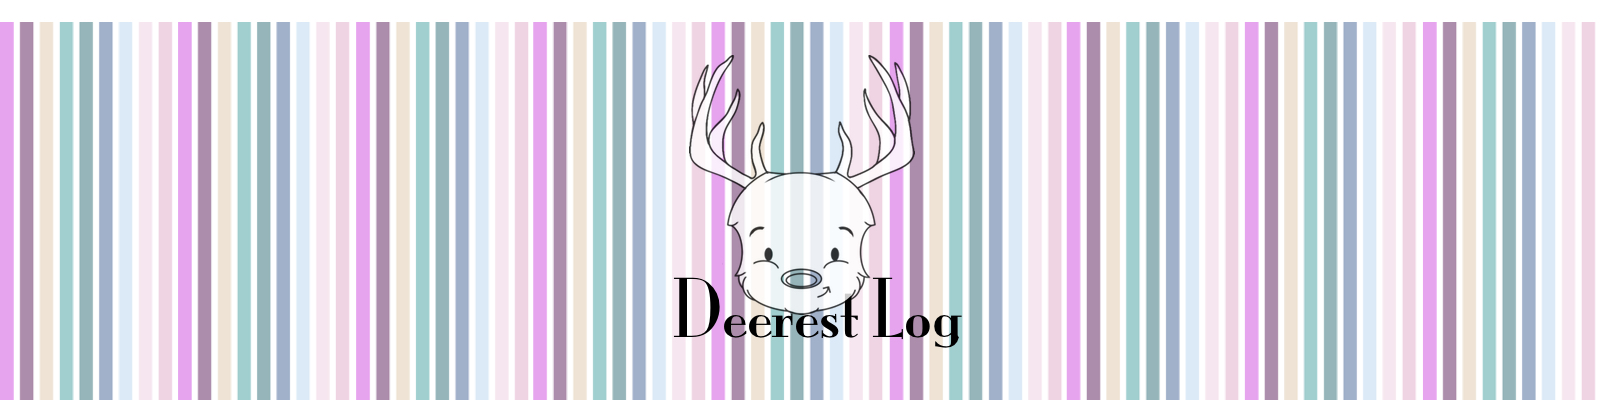 Deerest Log